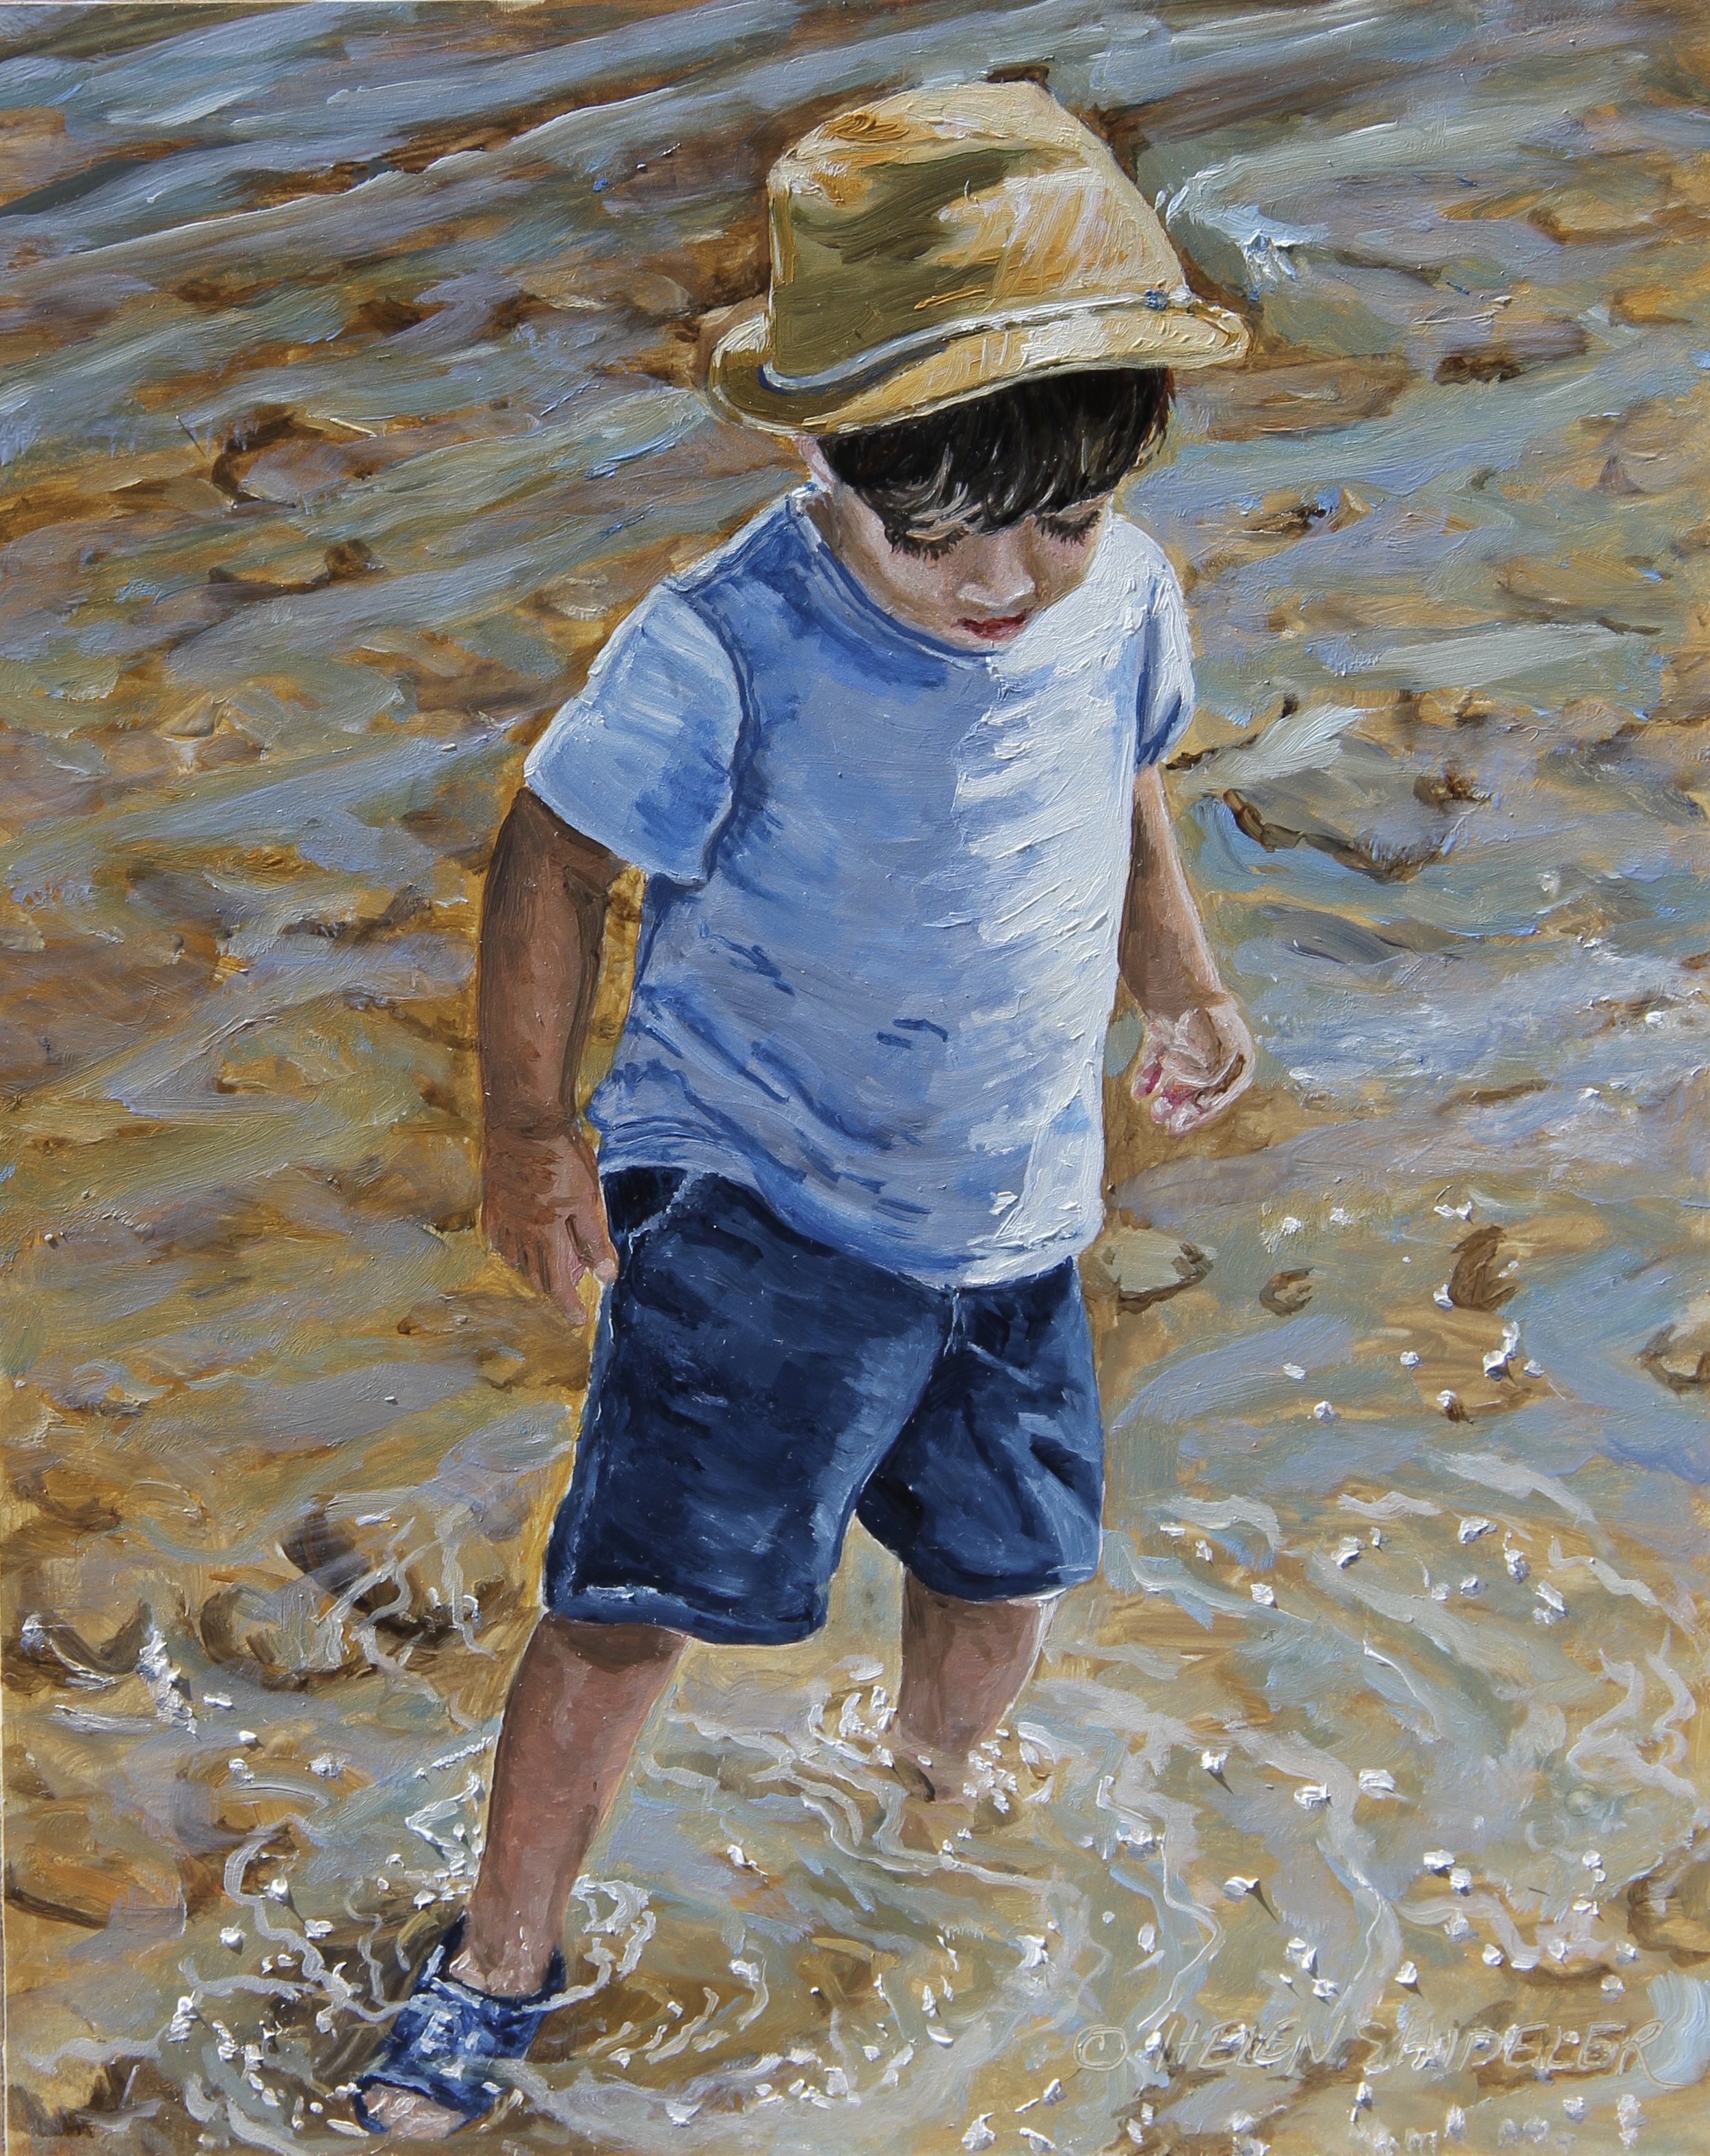 JUst Wading by Helen Shideler